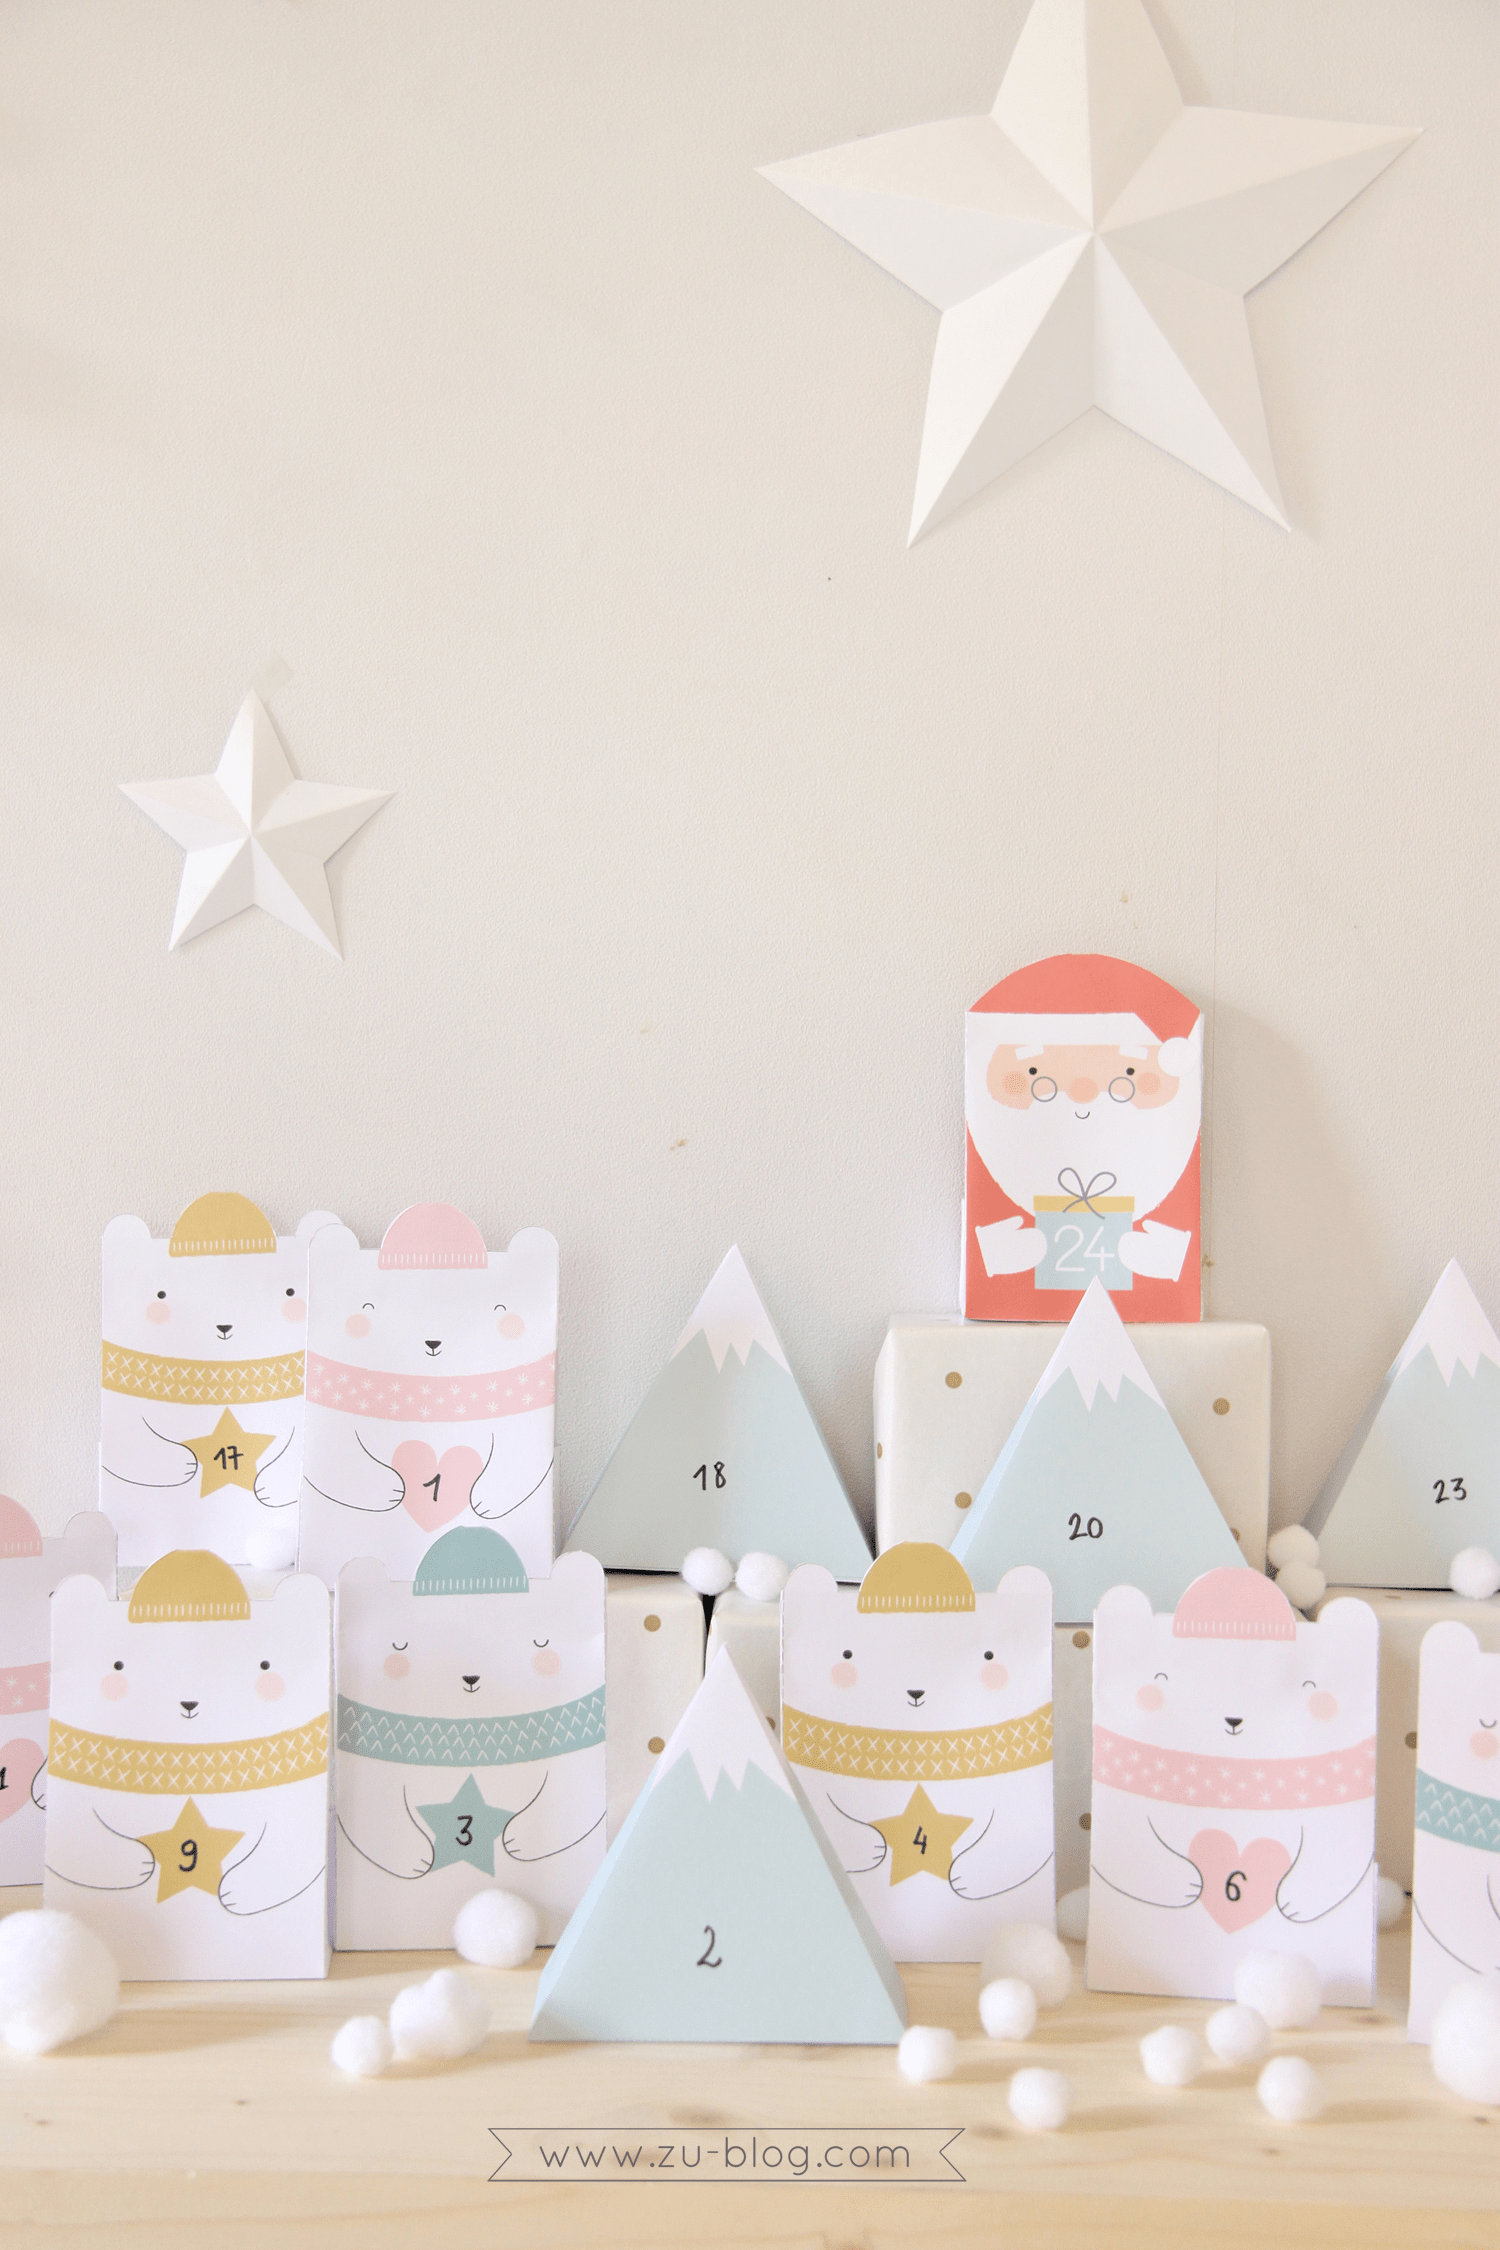 This printable advent calendar is so adorable. Download and print the Santa and bears, then follow the directions on the website for folding. You can also fill the insides with treats before folding shut. Super cute DIY Christmas Countdown idea! #ChristmasCountdown #DIYAdventCalendar #FreePrintable